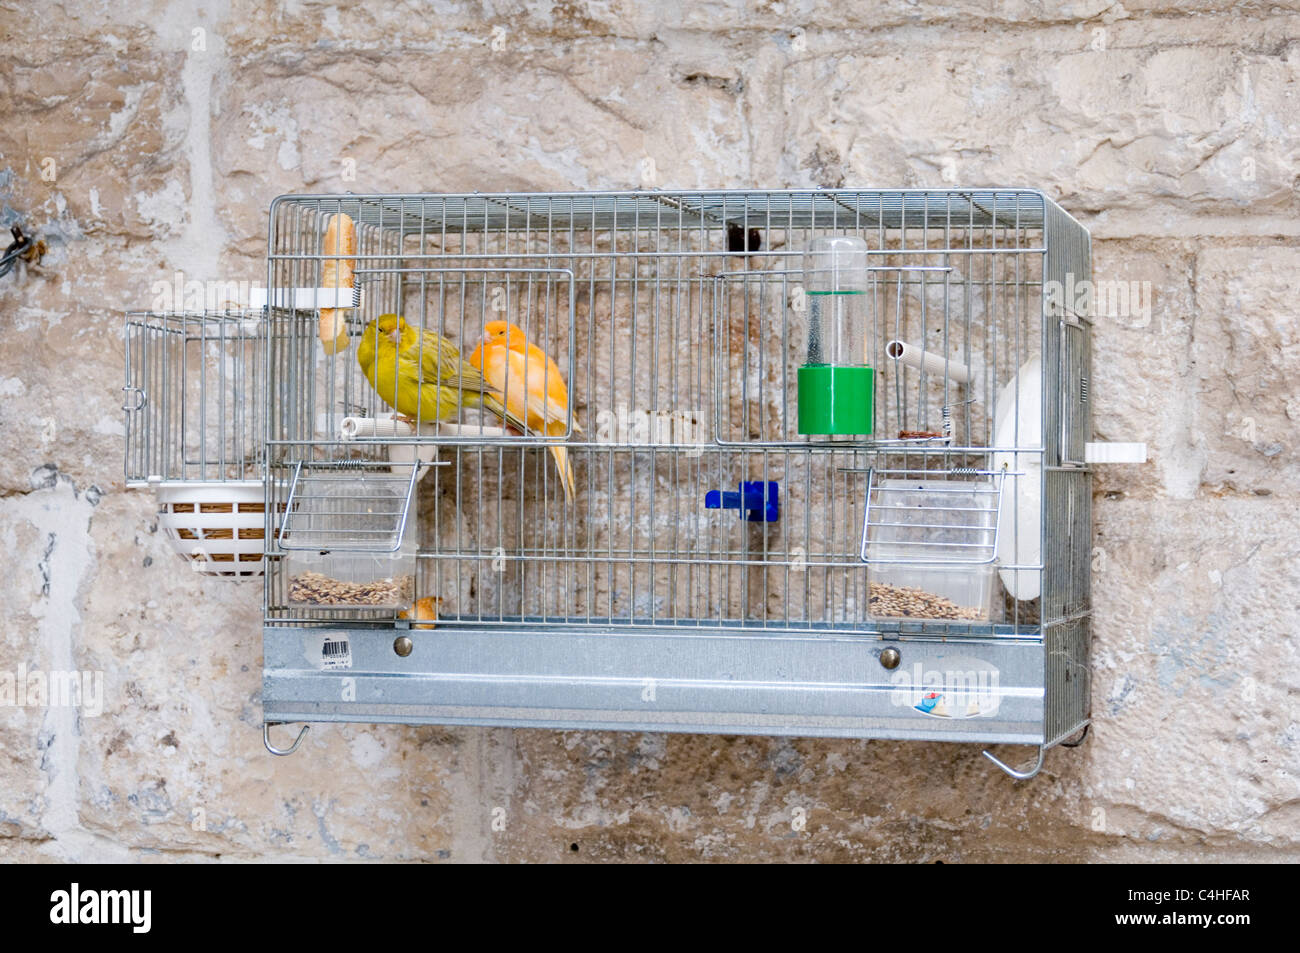 canary canneries cage caged cages bird birds pet birdcage cages birdcages feeder feeders captive captivity small - Stock Image